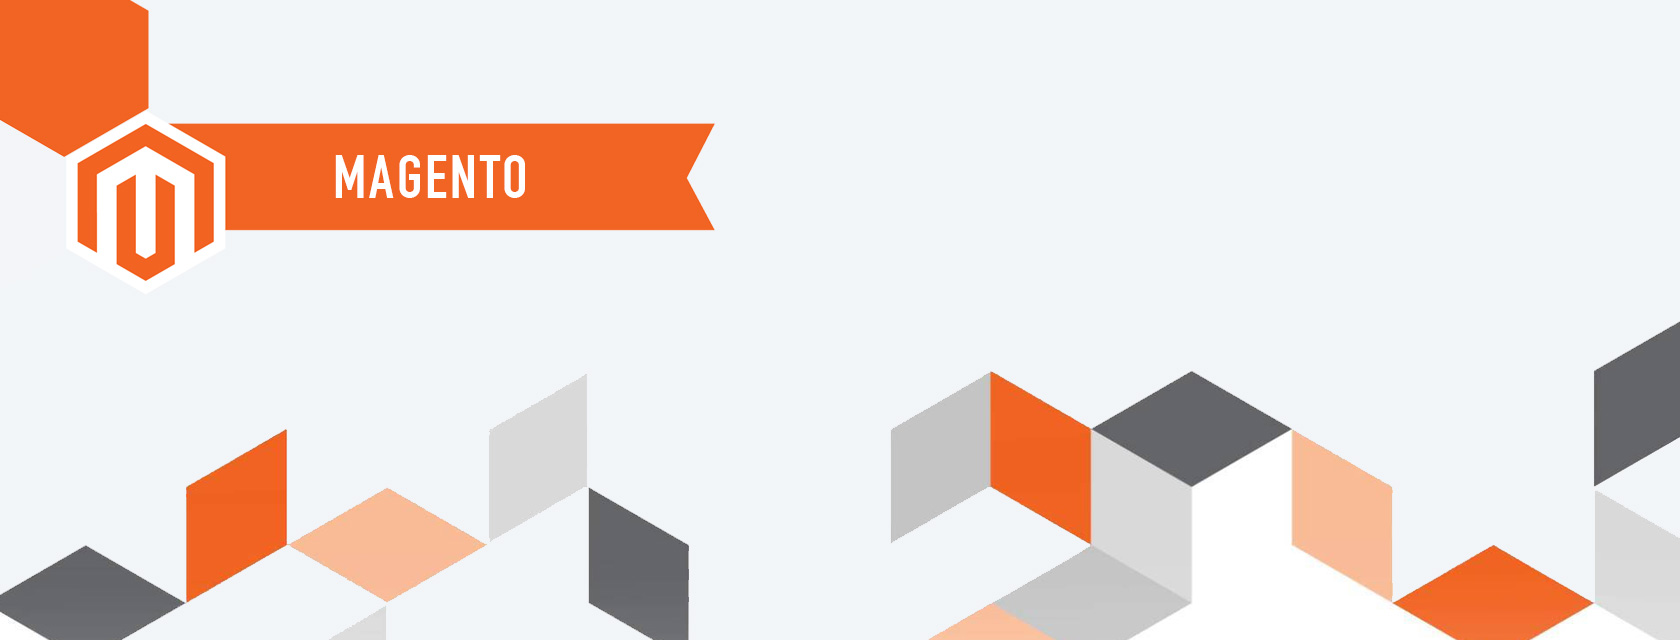 Magento Managed Services